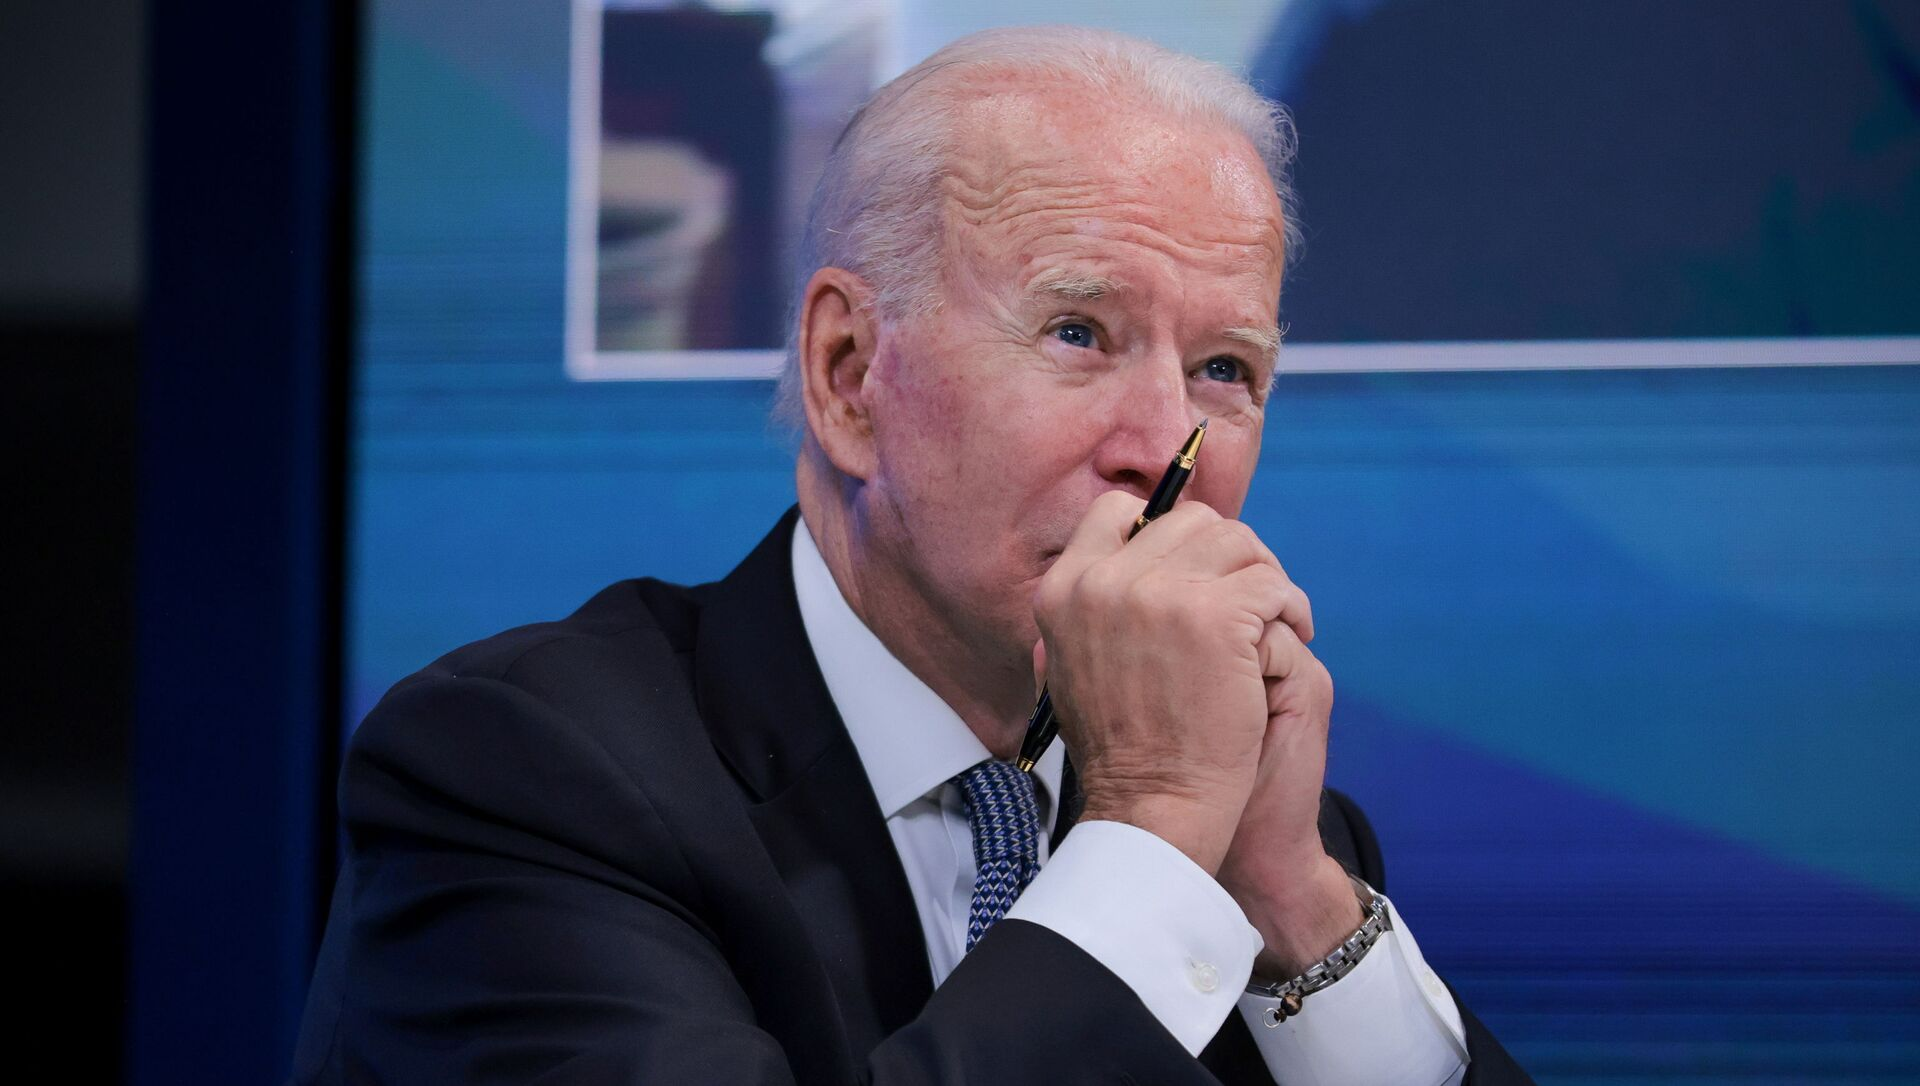 U.S. President Joe Biden meets with governors virtually to discuss efforts to strengthen wildfire prevention, preparedness and response efforts, at the South Court Auditorium at the White House complex in Washington, U.S., July 30, 2021 - Sputnik International, 1920, 30.07.2021